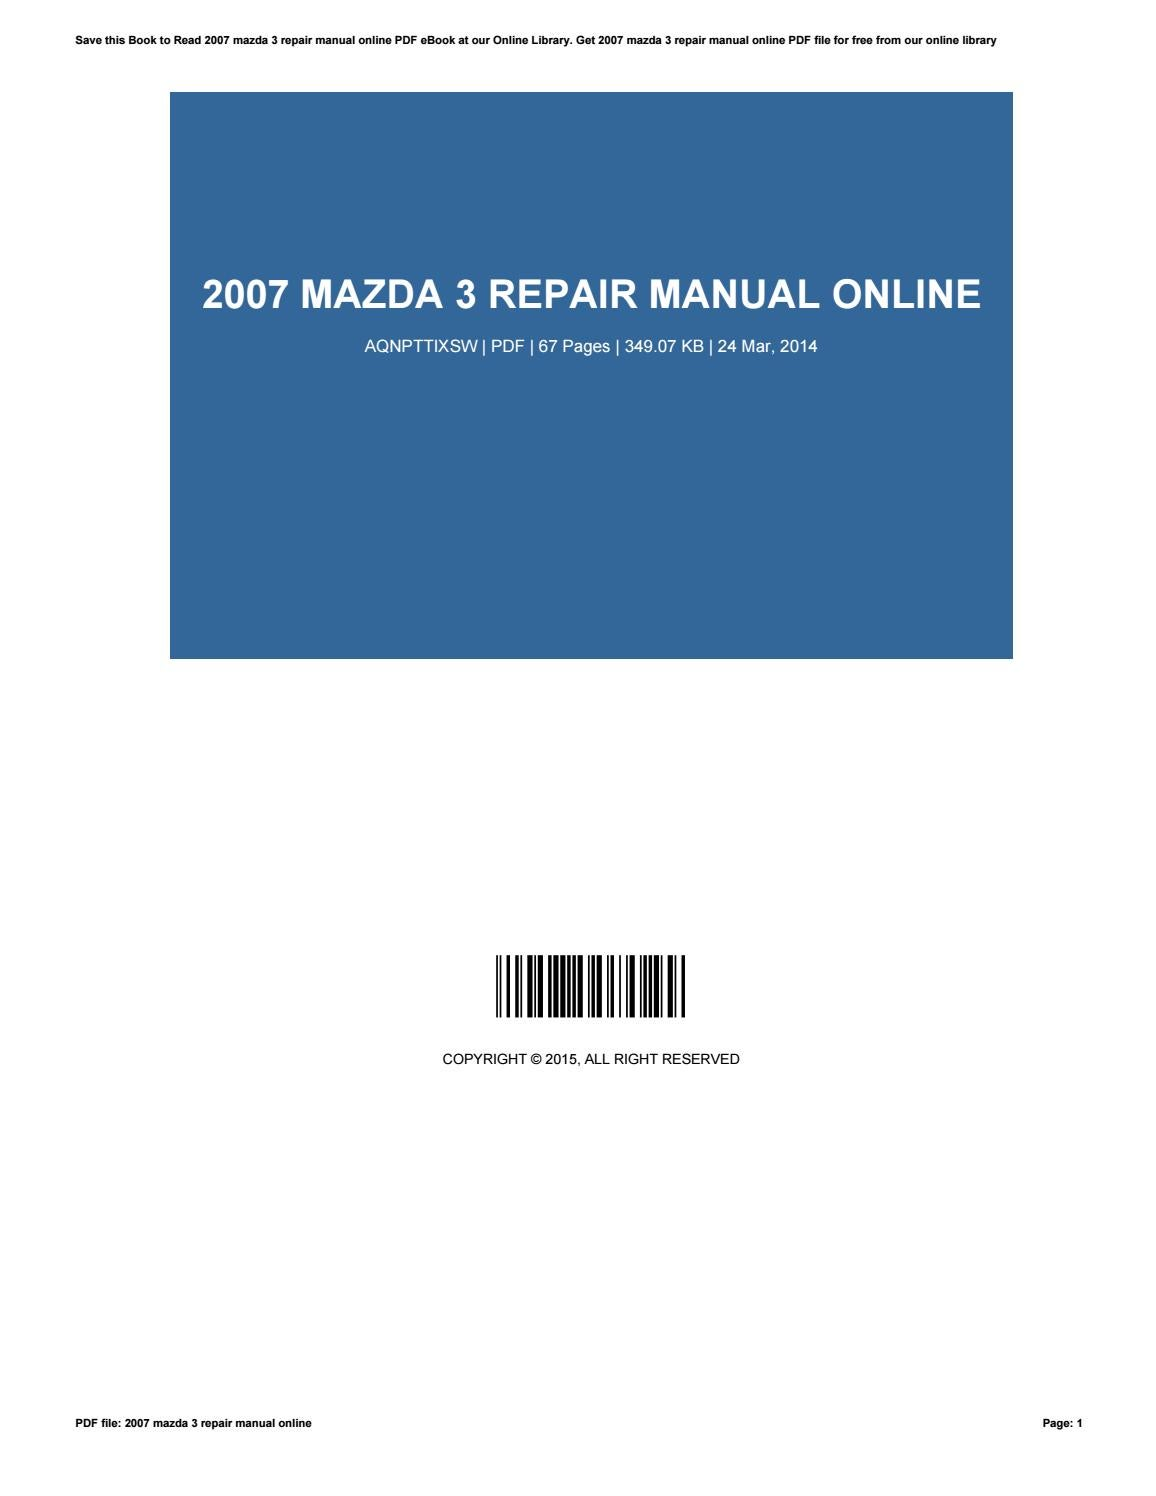 Mazda e2015 repair manual ebook array 2007 mazda 3 repair manual online by henrydenman3412 issuu rh issuu fandeluxe